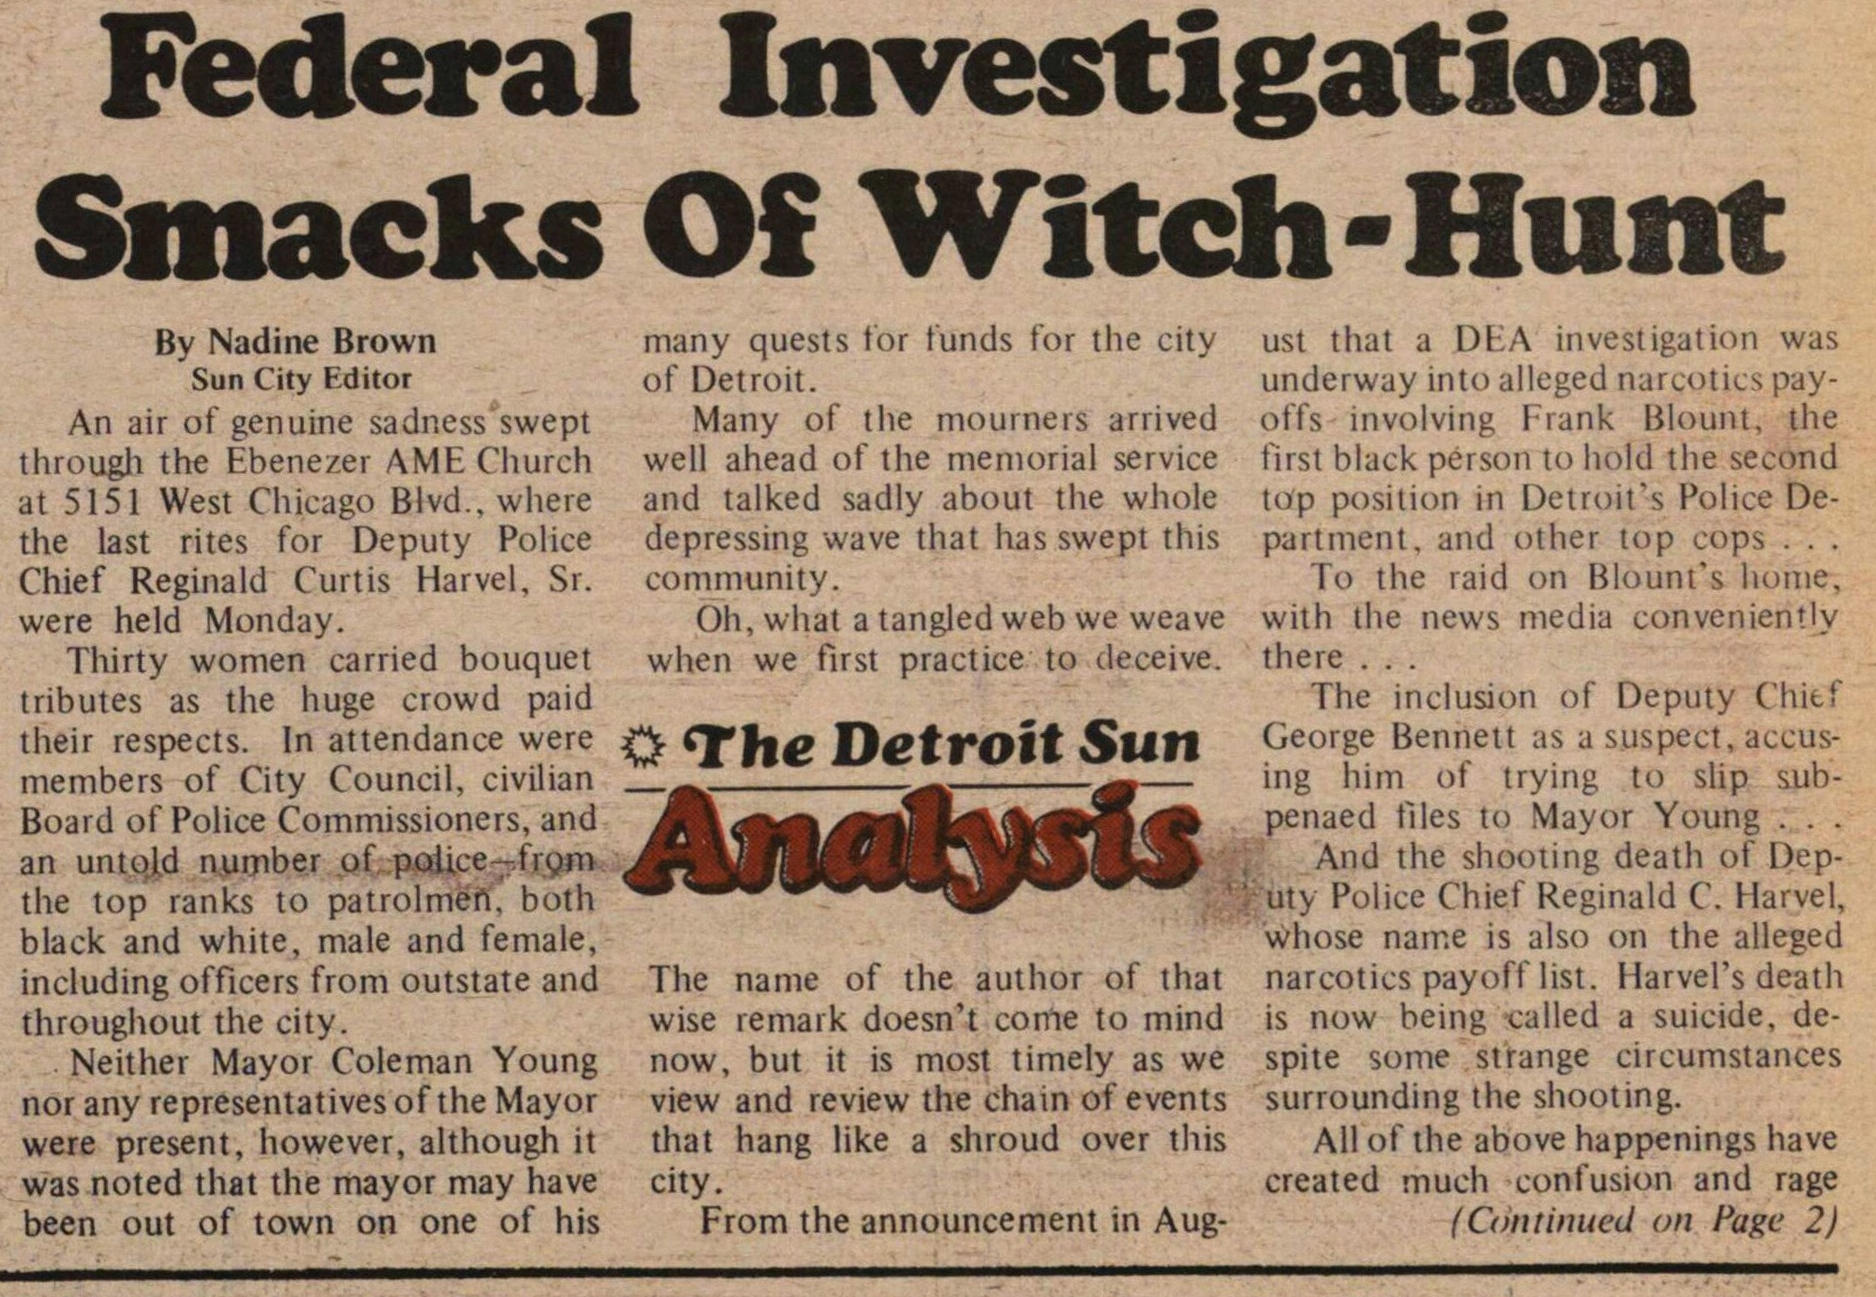 Federal Investigation Smacks Of Witch-hunt image